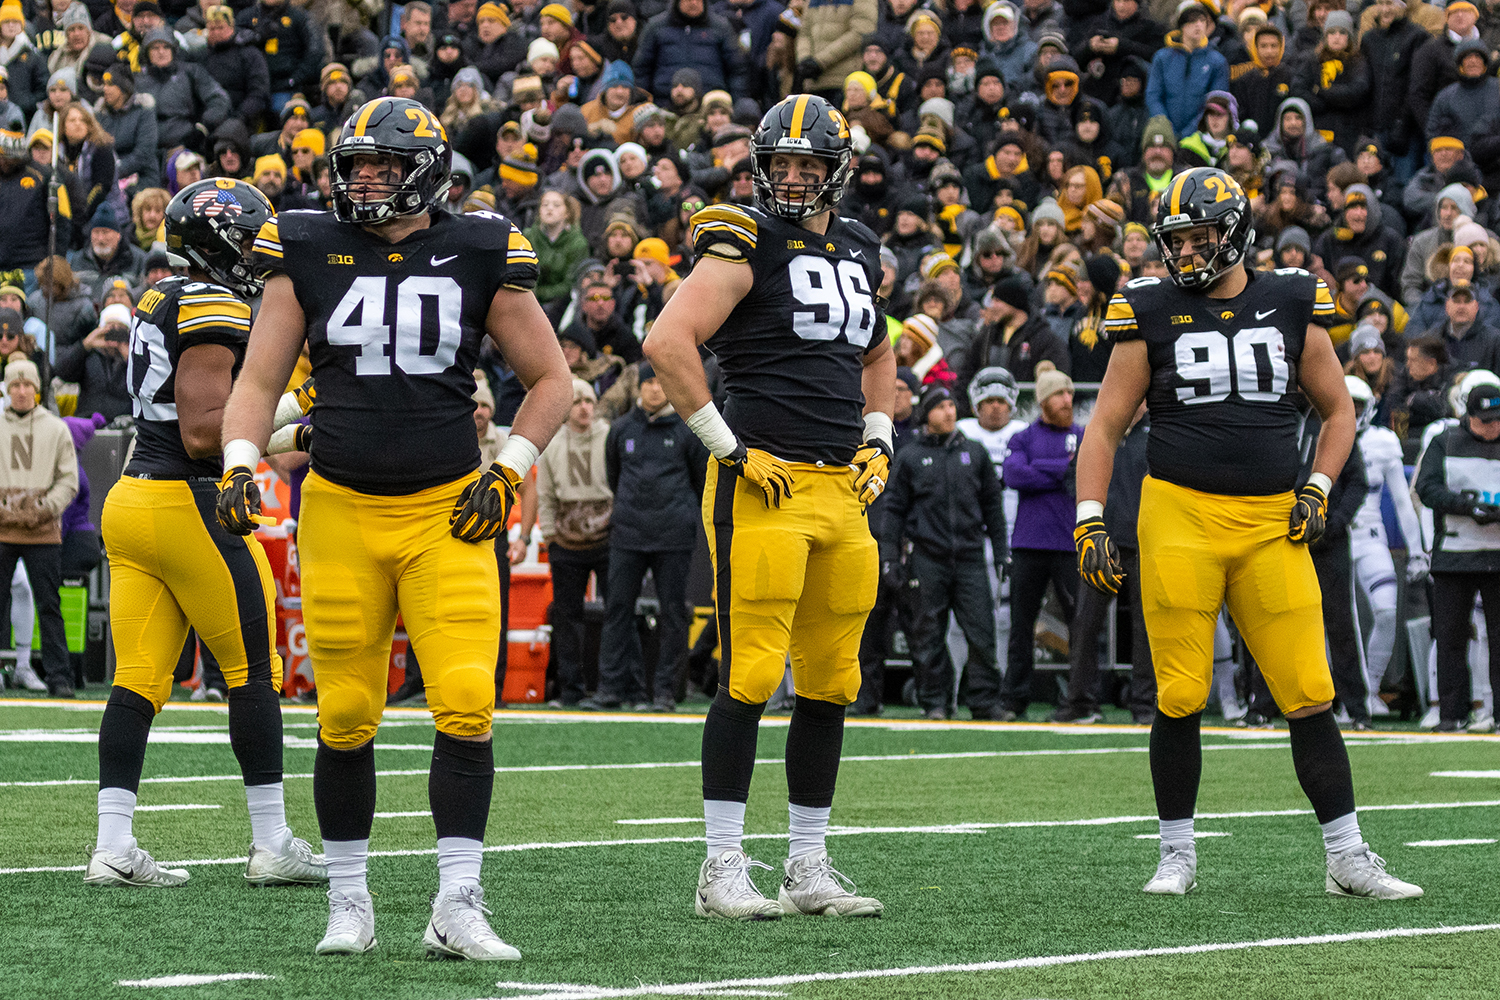 Iowa defensive end Parker Hesse (40), Iowa defensive end Matt Nelson (96), and Iowa defensive end Sam Brincks (90) look back towards their bench during a game against Northwestern on Saturday, Nov. 10 at Kinnick Stadium. The Wildcats defeated the Hawkeyes 14-10.